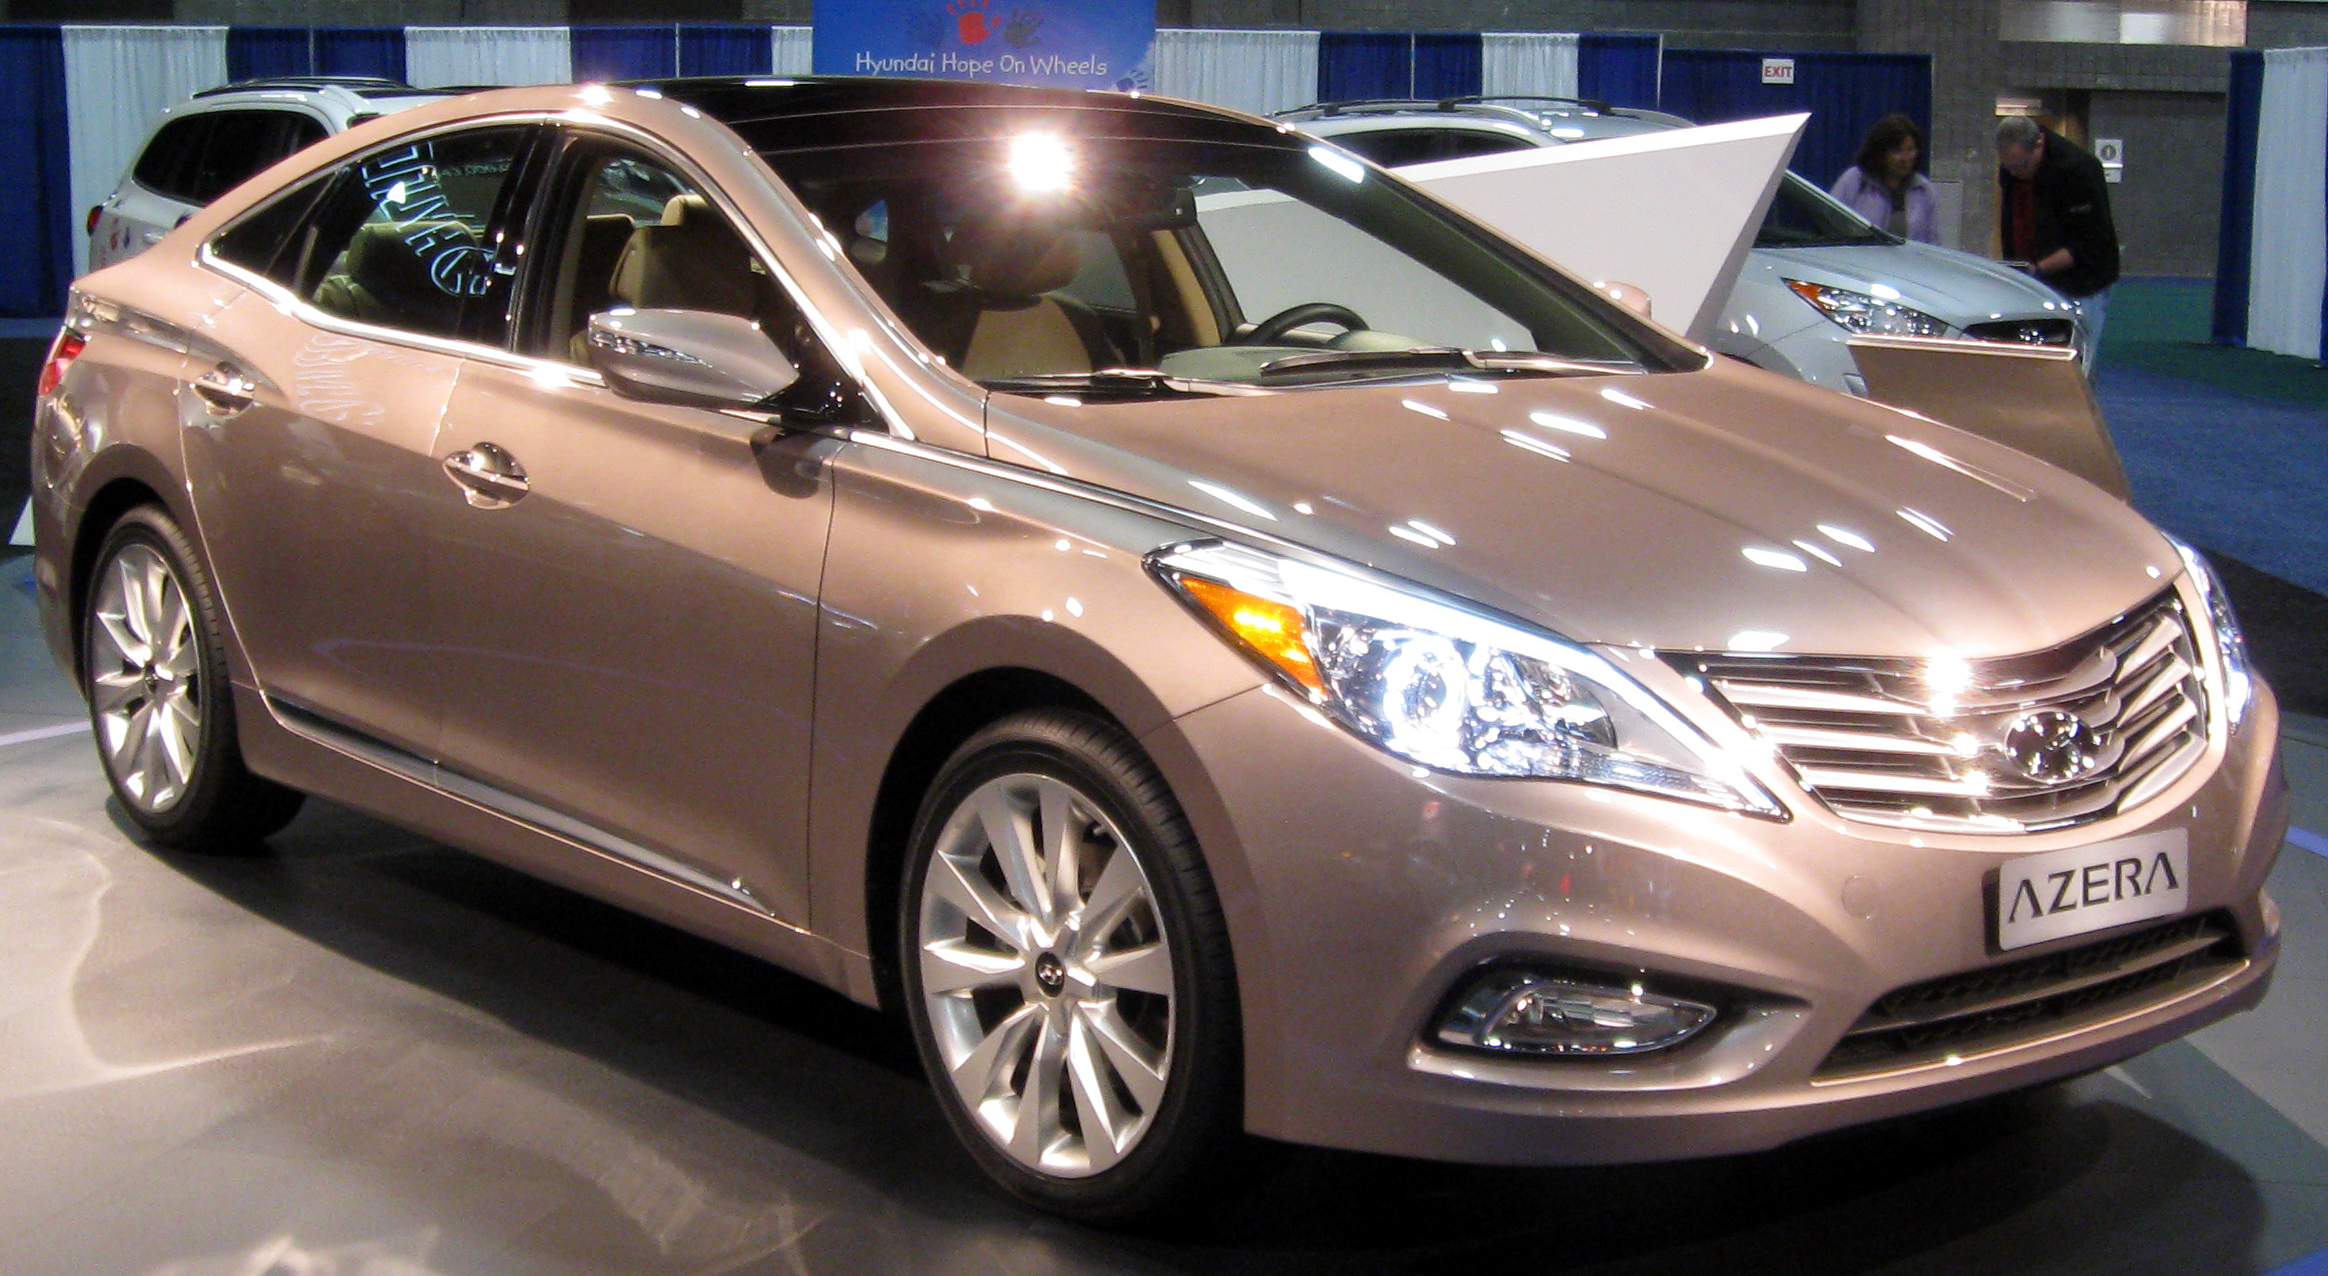 black option information carsedan leather advert azera hyundai with brown full interior vehicles